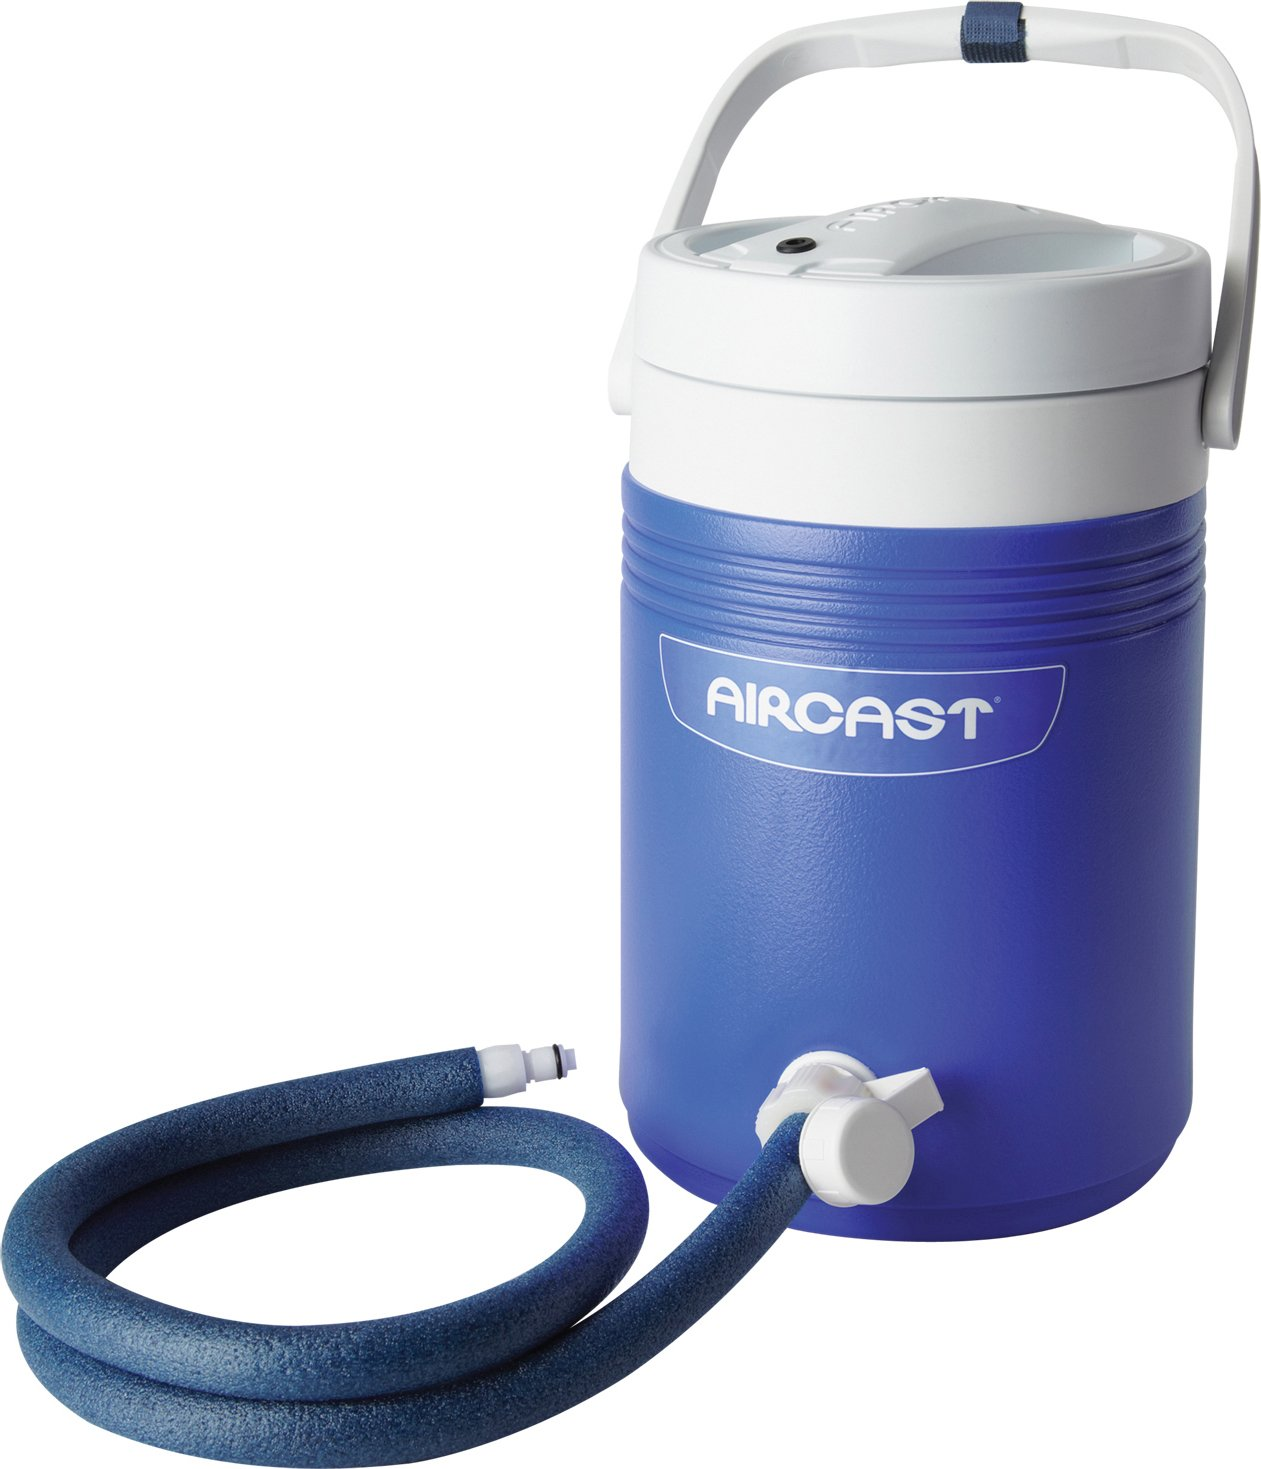 DonJoy Aircast Cryo/Cuff Cold Therapy: Shoulder Cryo/Cuff with Non-Motorized (Gravity-Fed) Cooler, X-Large by DonJoy (Image #3)